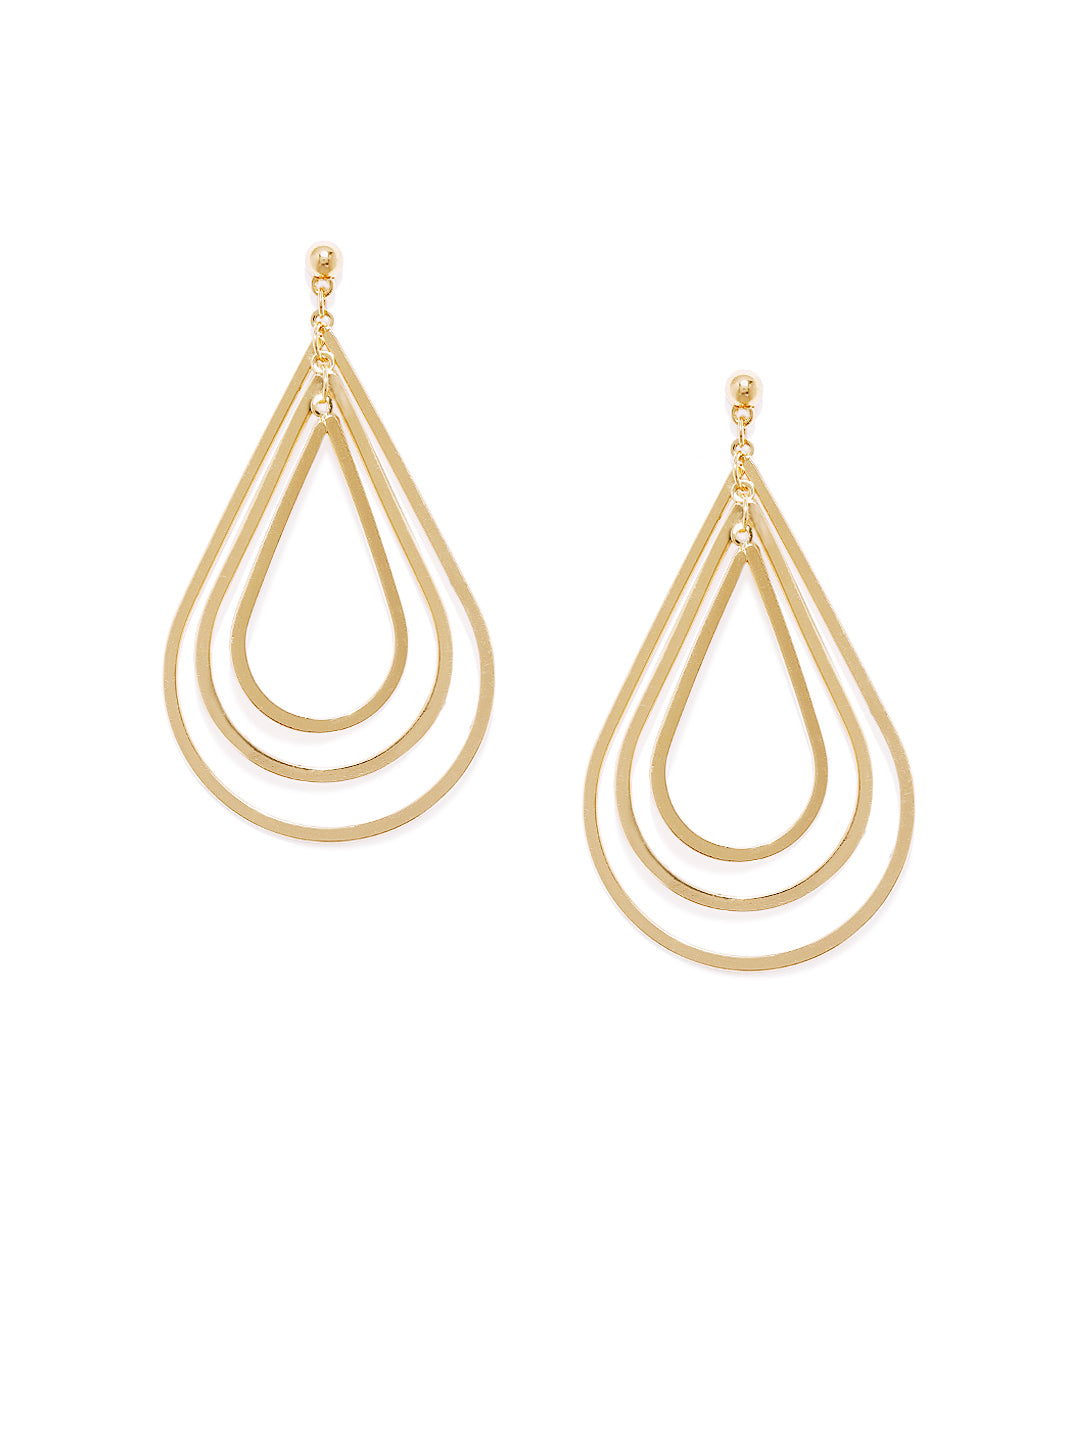 Peardrop Gold Earrings - ChicMela